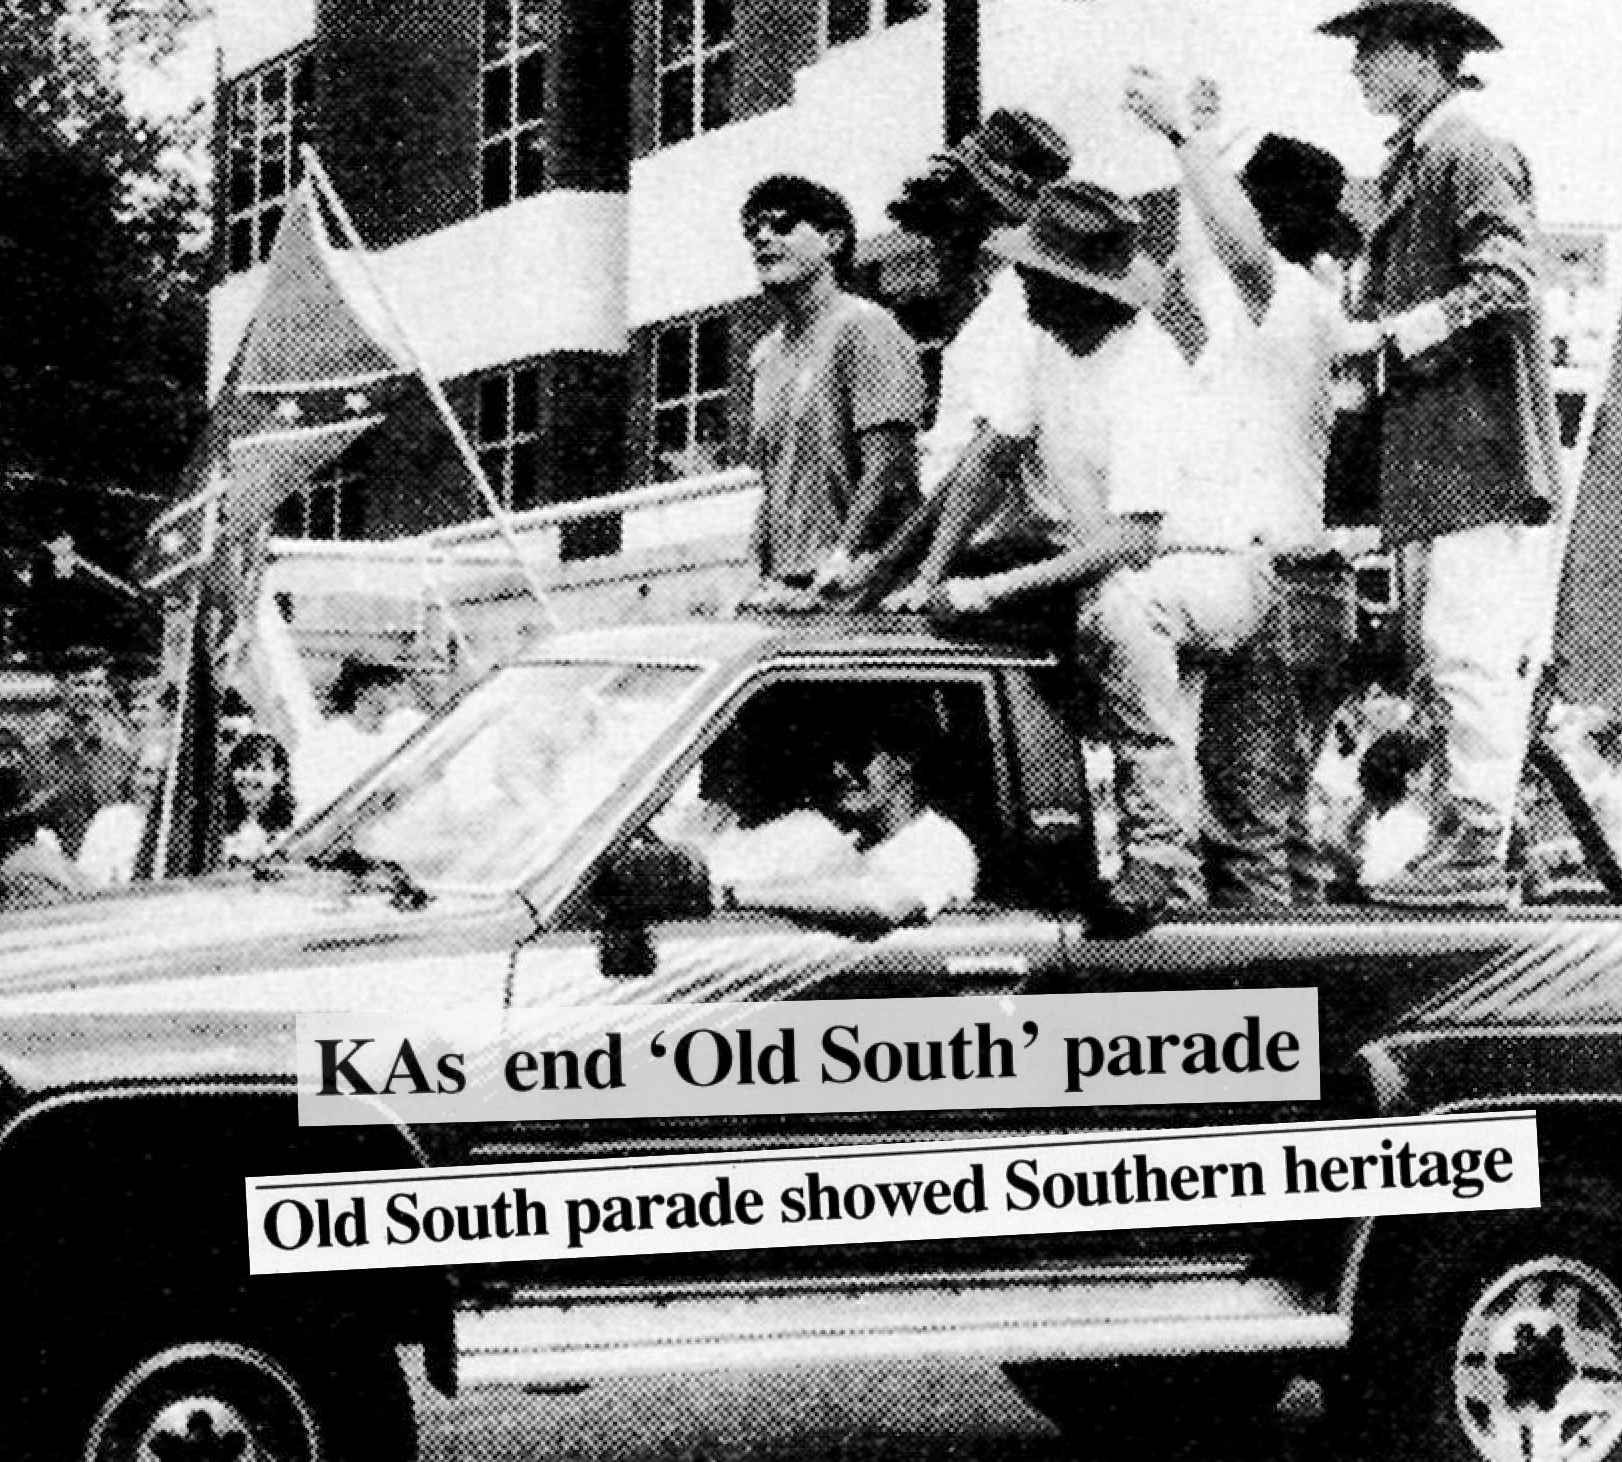 KAs end 'Old South' parade, Old South parade showed Southern heritage